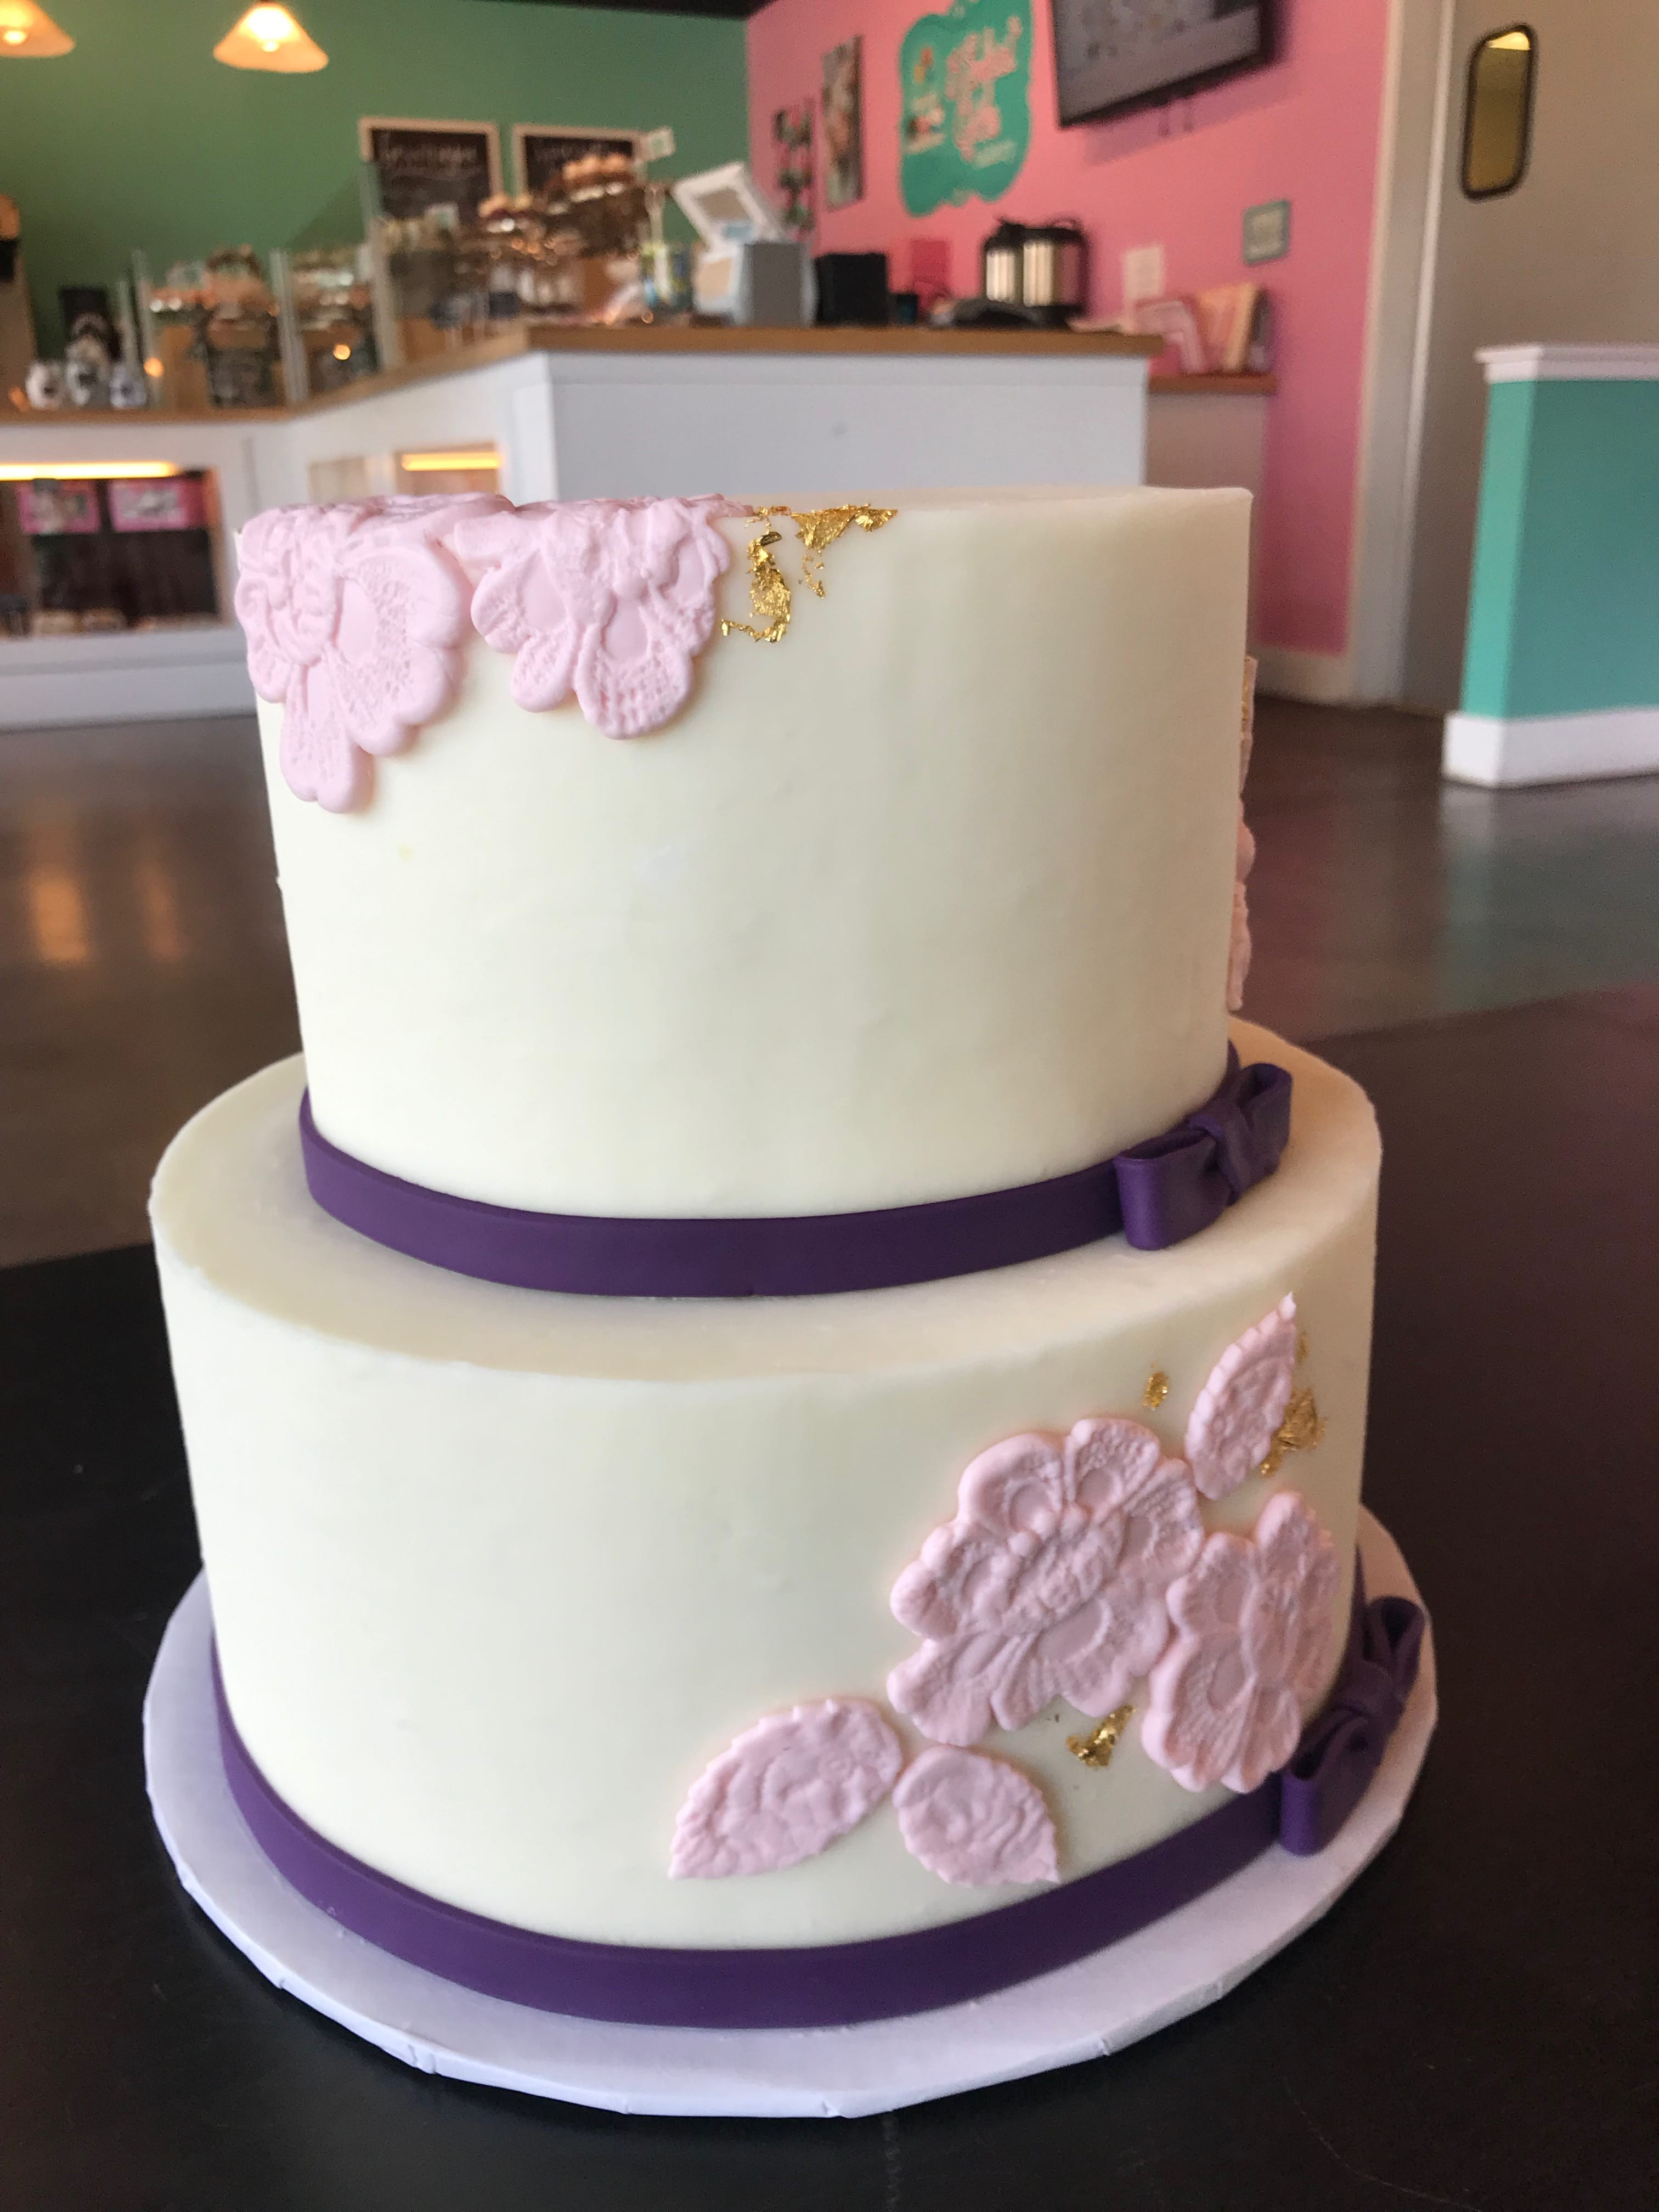 2 Tier Embossed Cake with Pink, Purple and Gold | 3 Sweet Girls Cakery